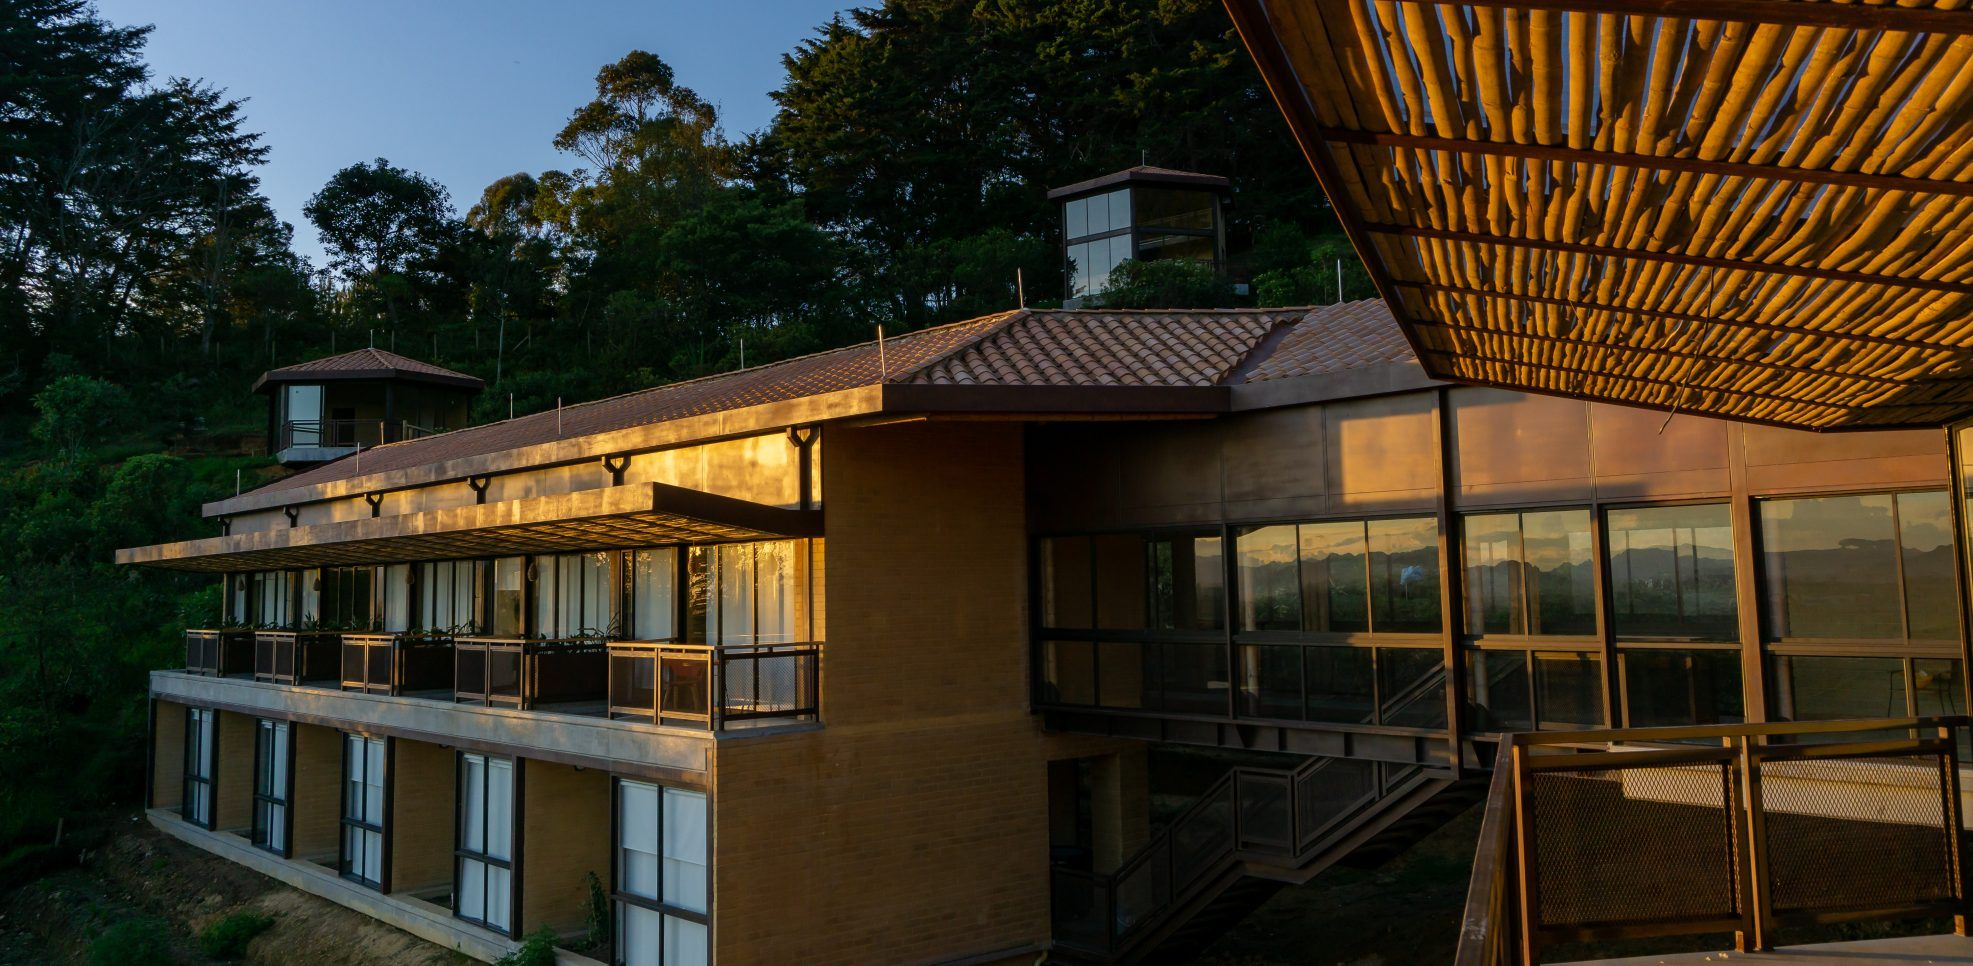 Cannua hotel in Colombia